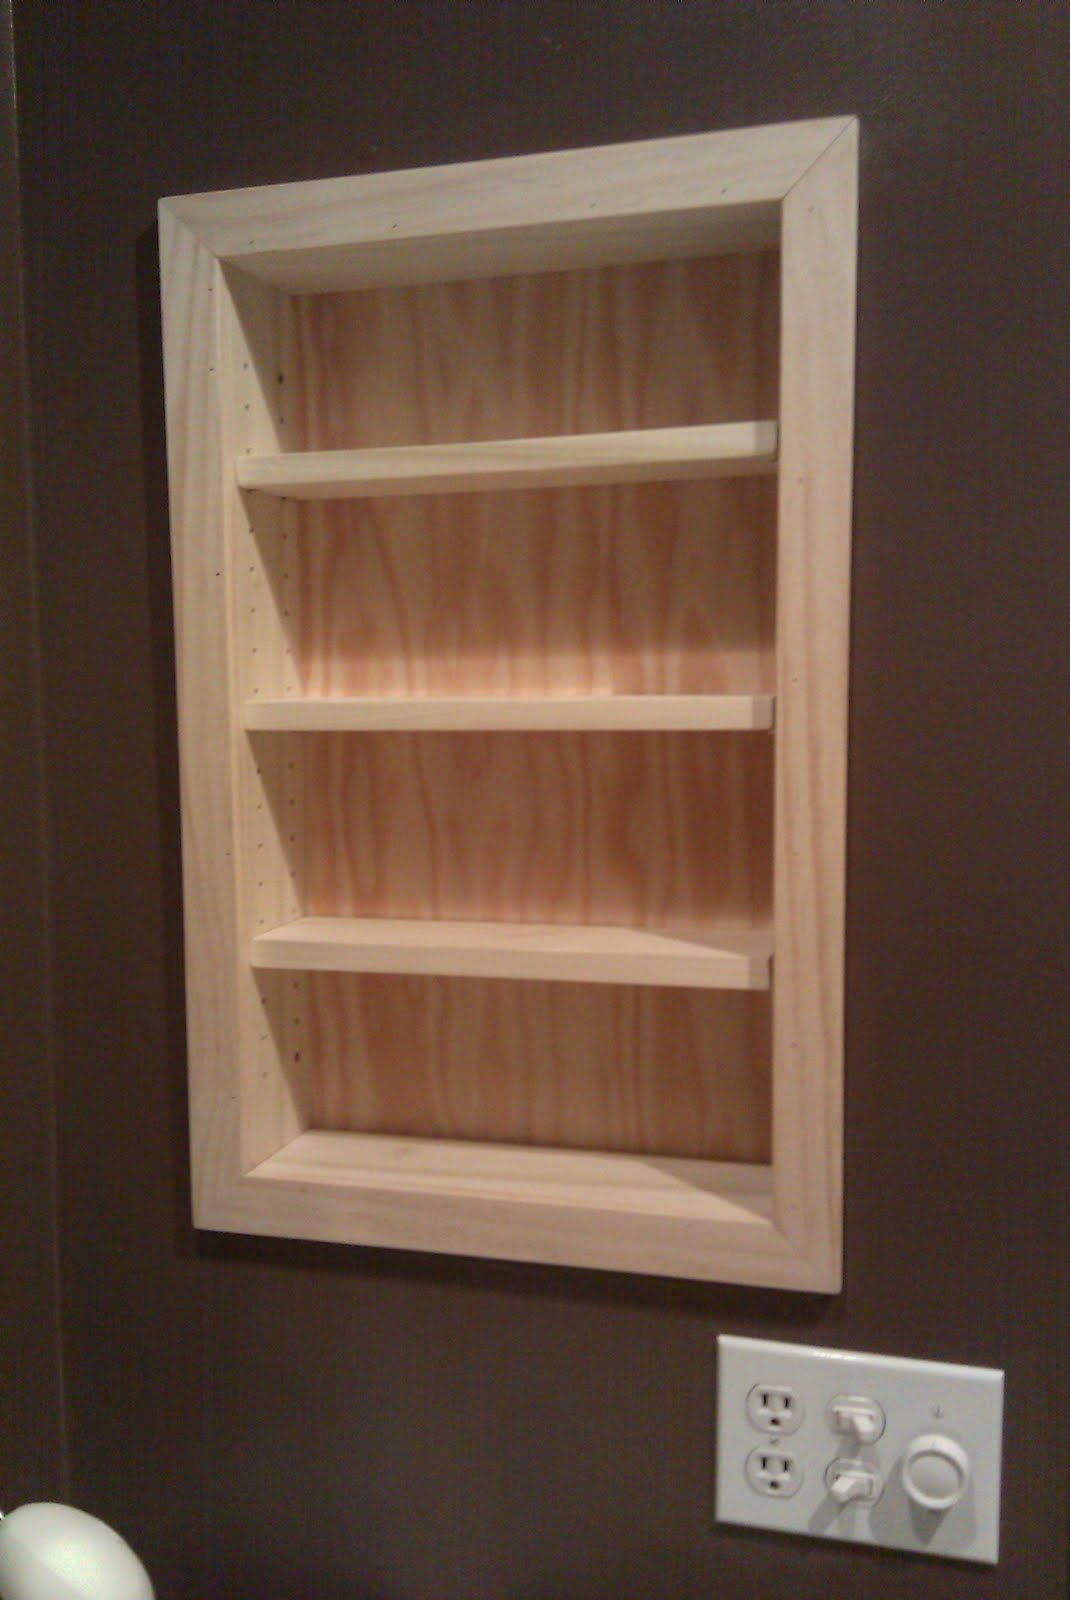 Lovely This Client Removed Their Old Medicine Cabinet And Asked Me To Replace It  With Recessed Shelves